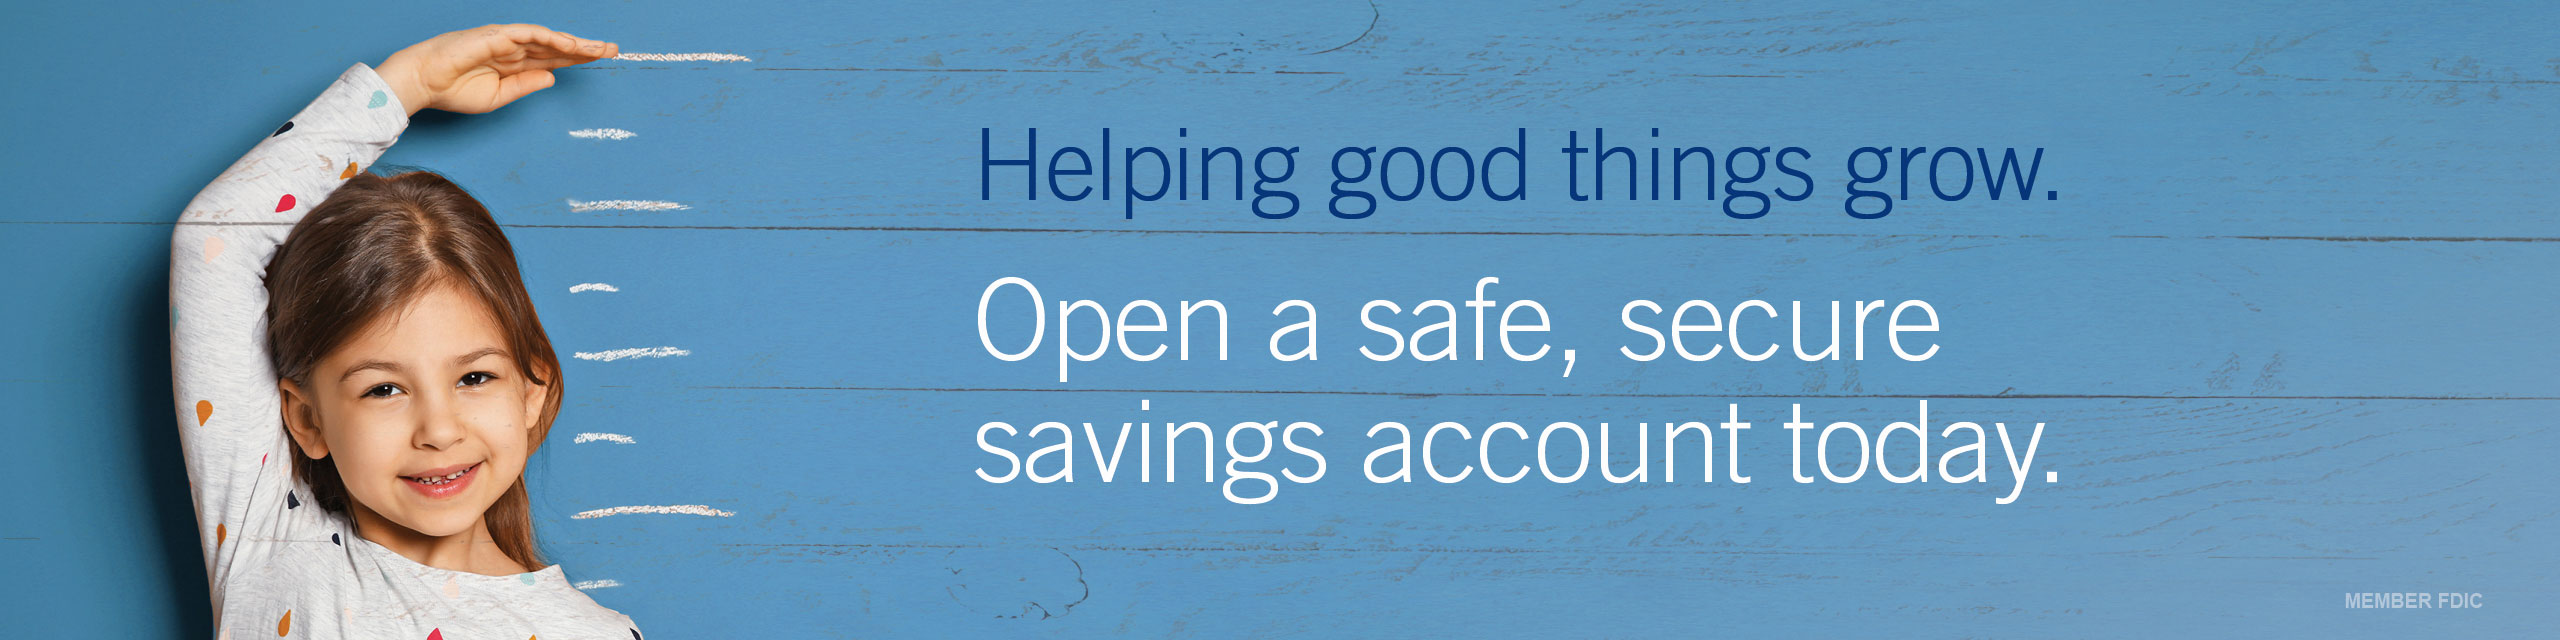 2020-08-12 Open a Savings Account